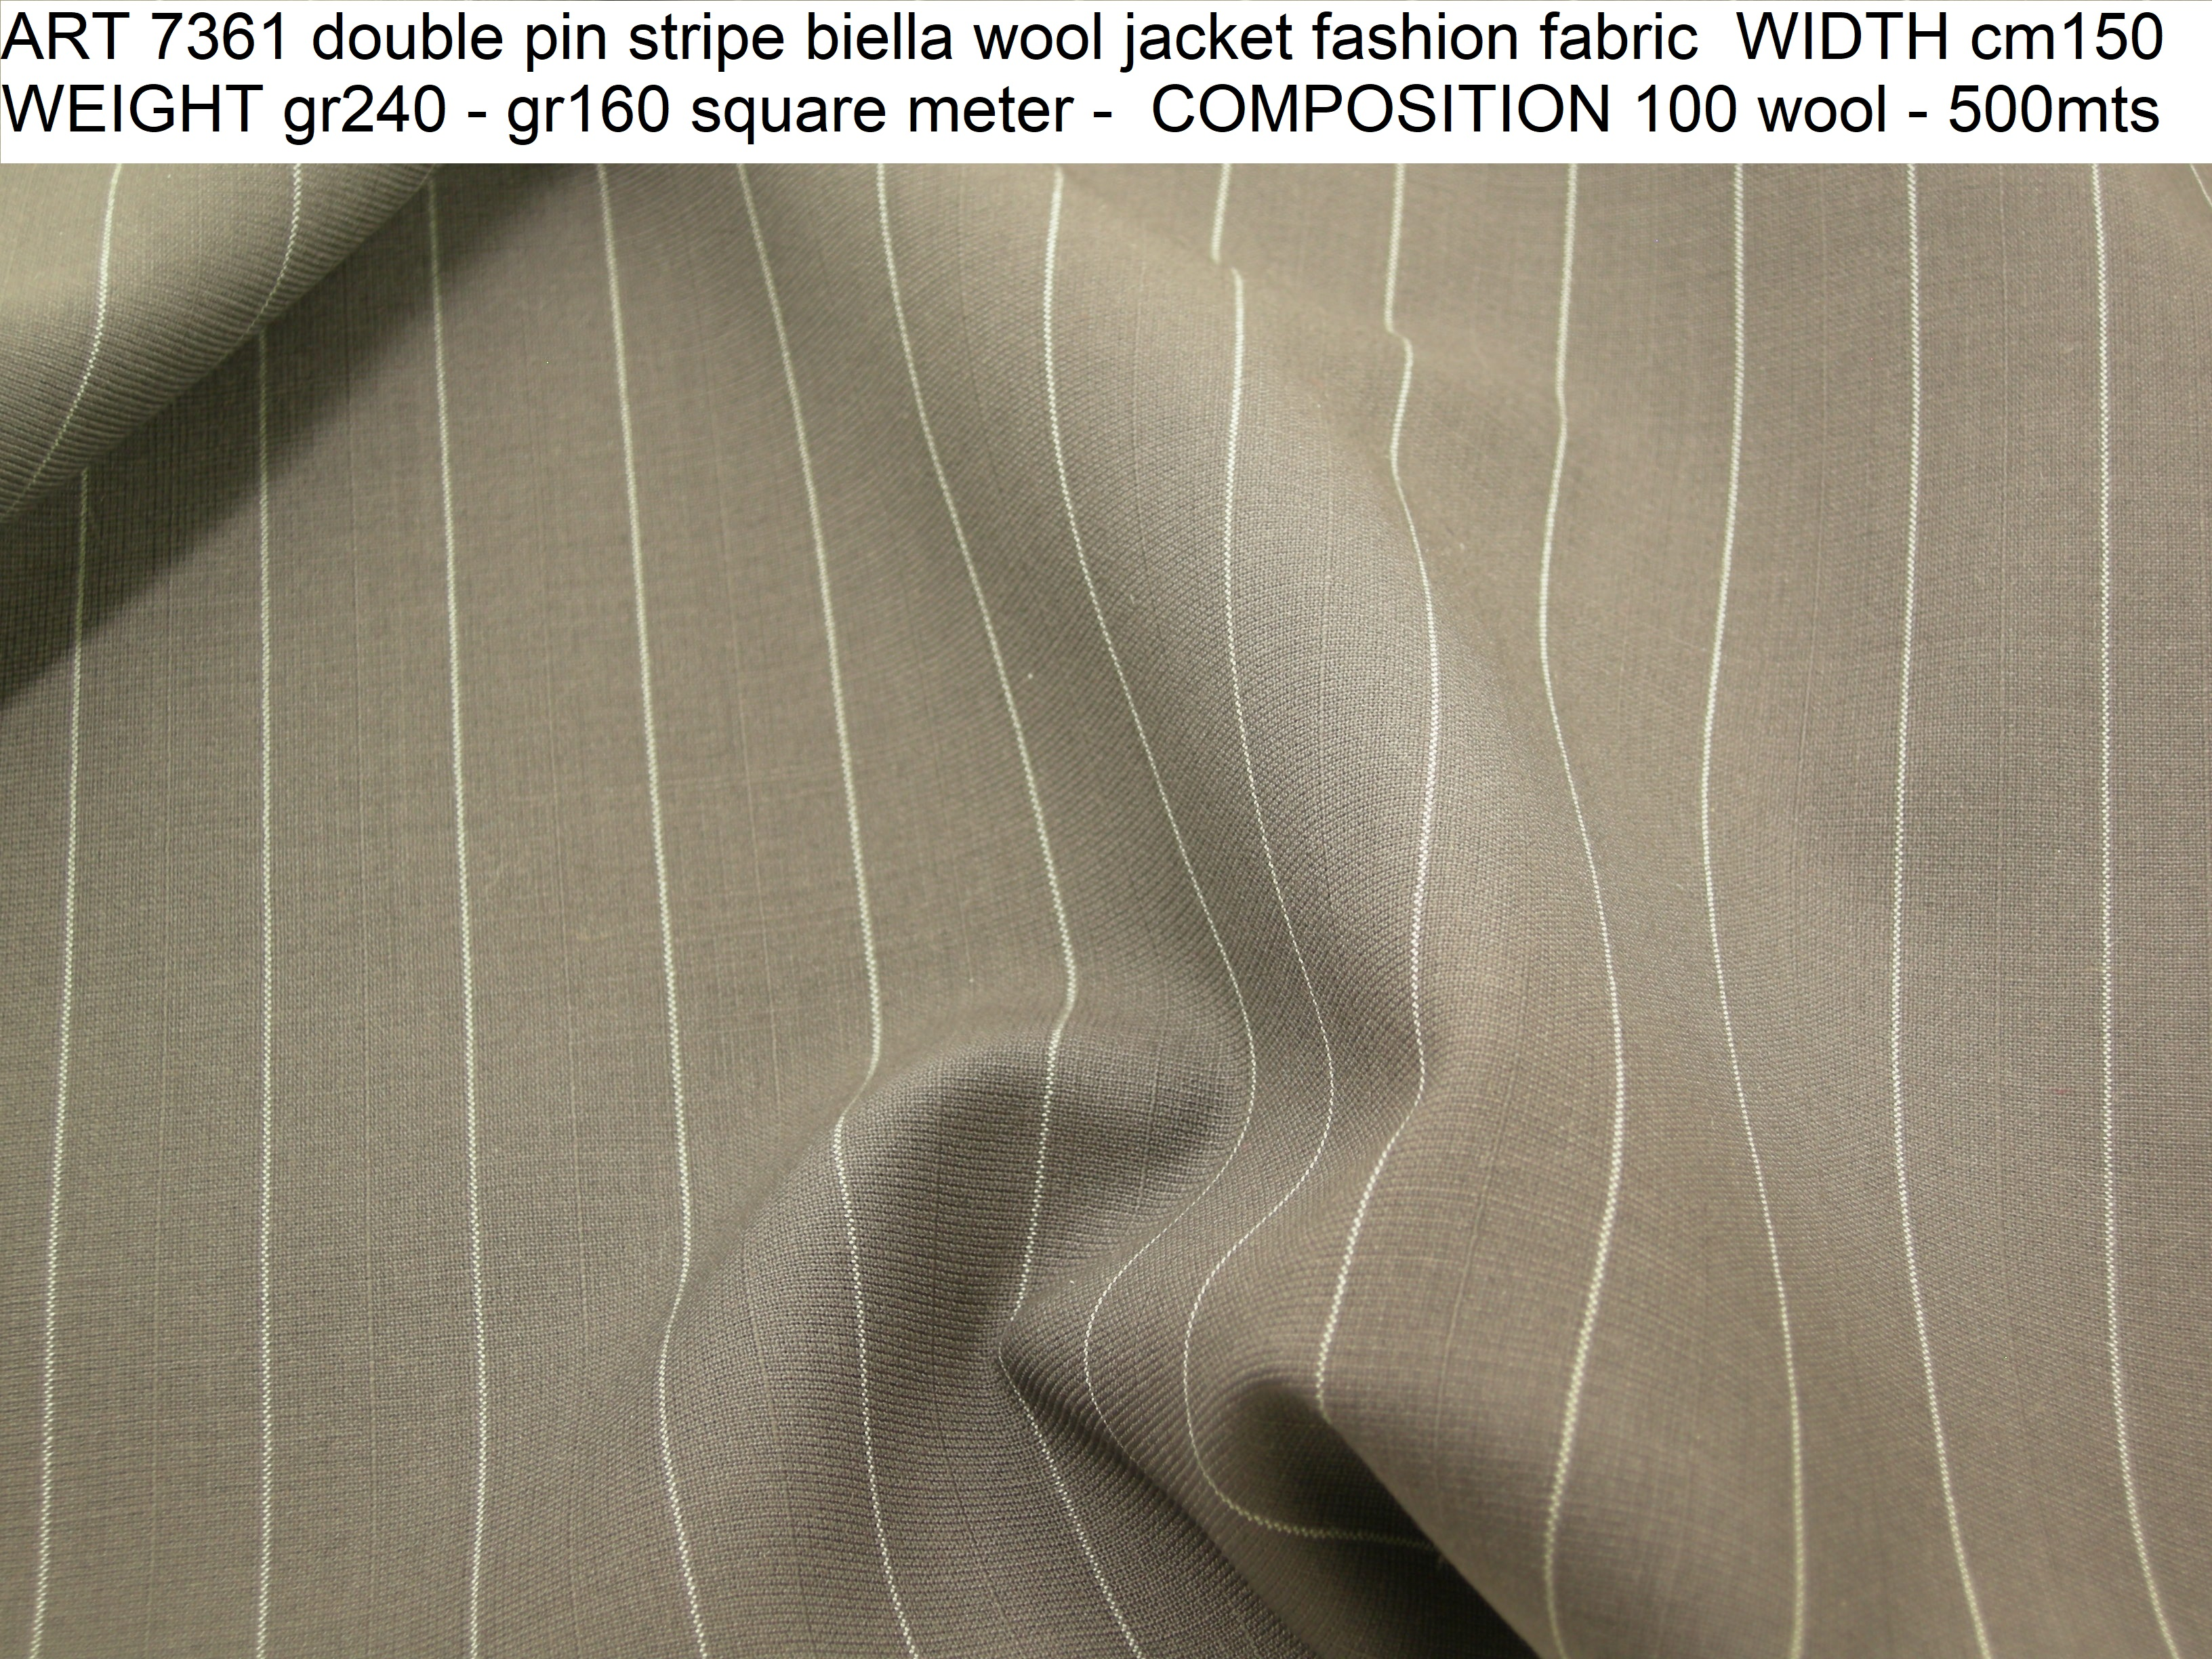 ART 7361 double pin stripe biella wool jacket fashion fabric WIDTH cm150 WEIGHT gr240 - gr160 square meter - COMPOSITION 100 wool - 500mts